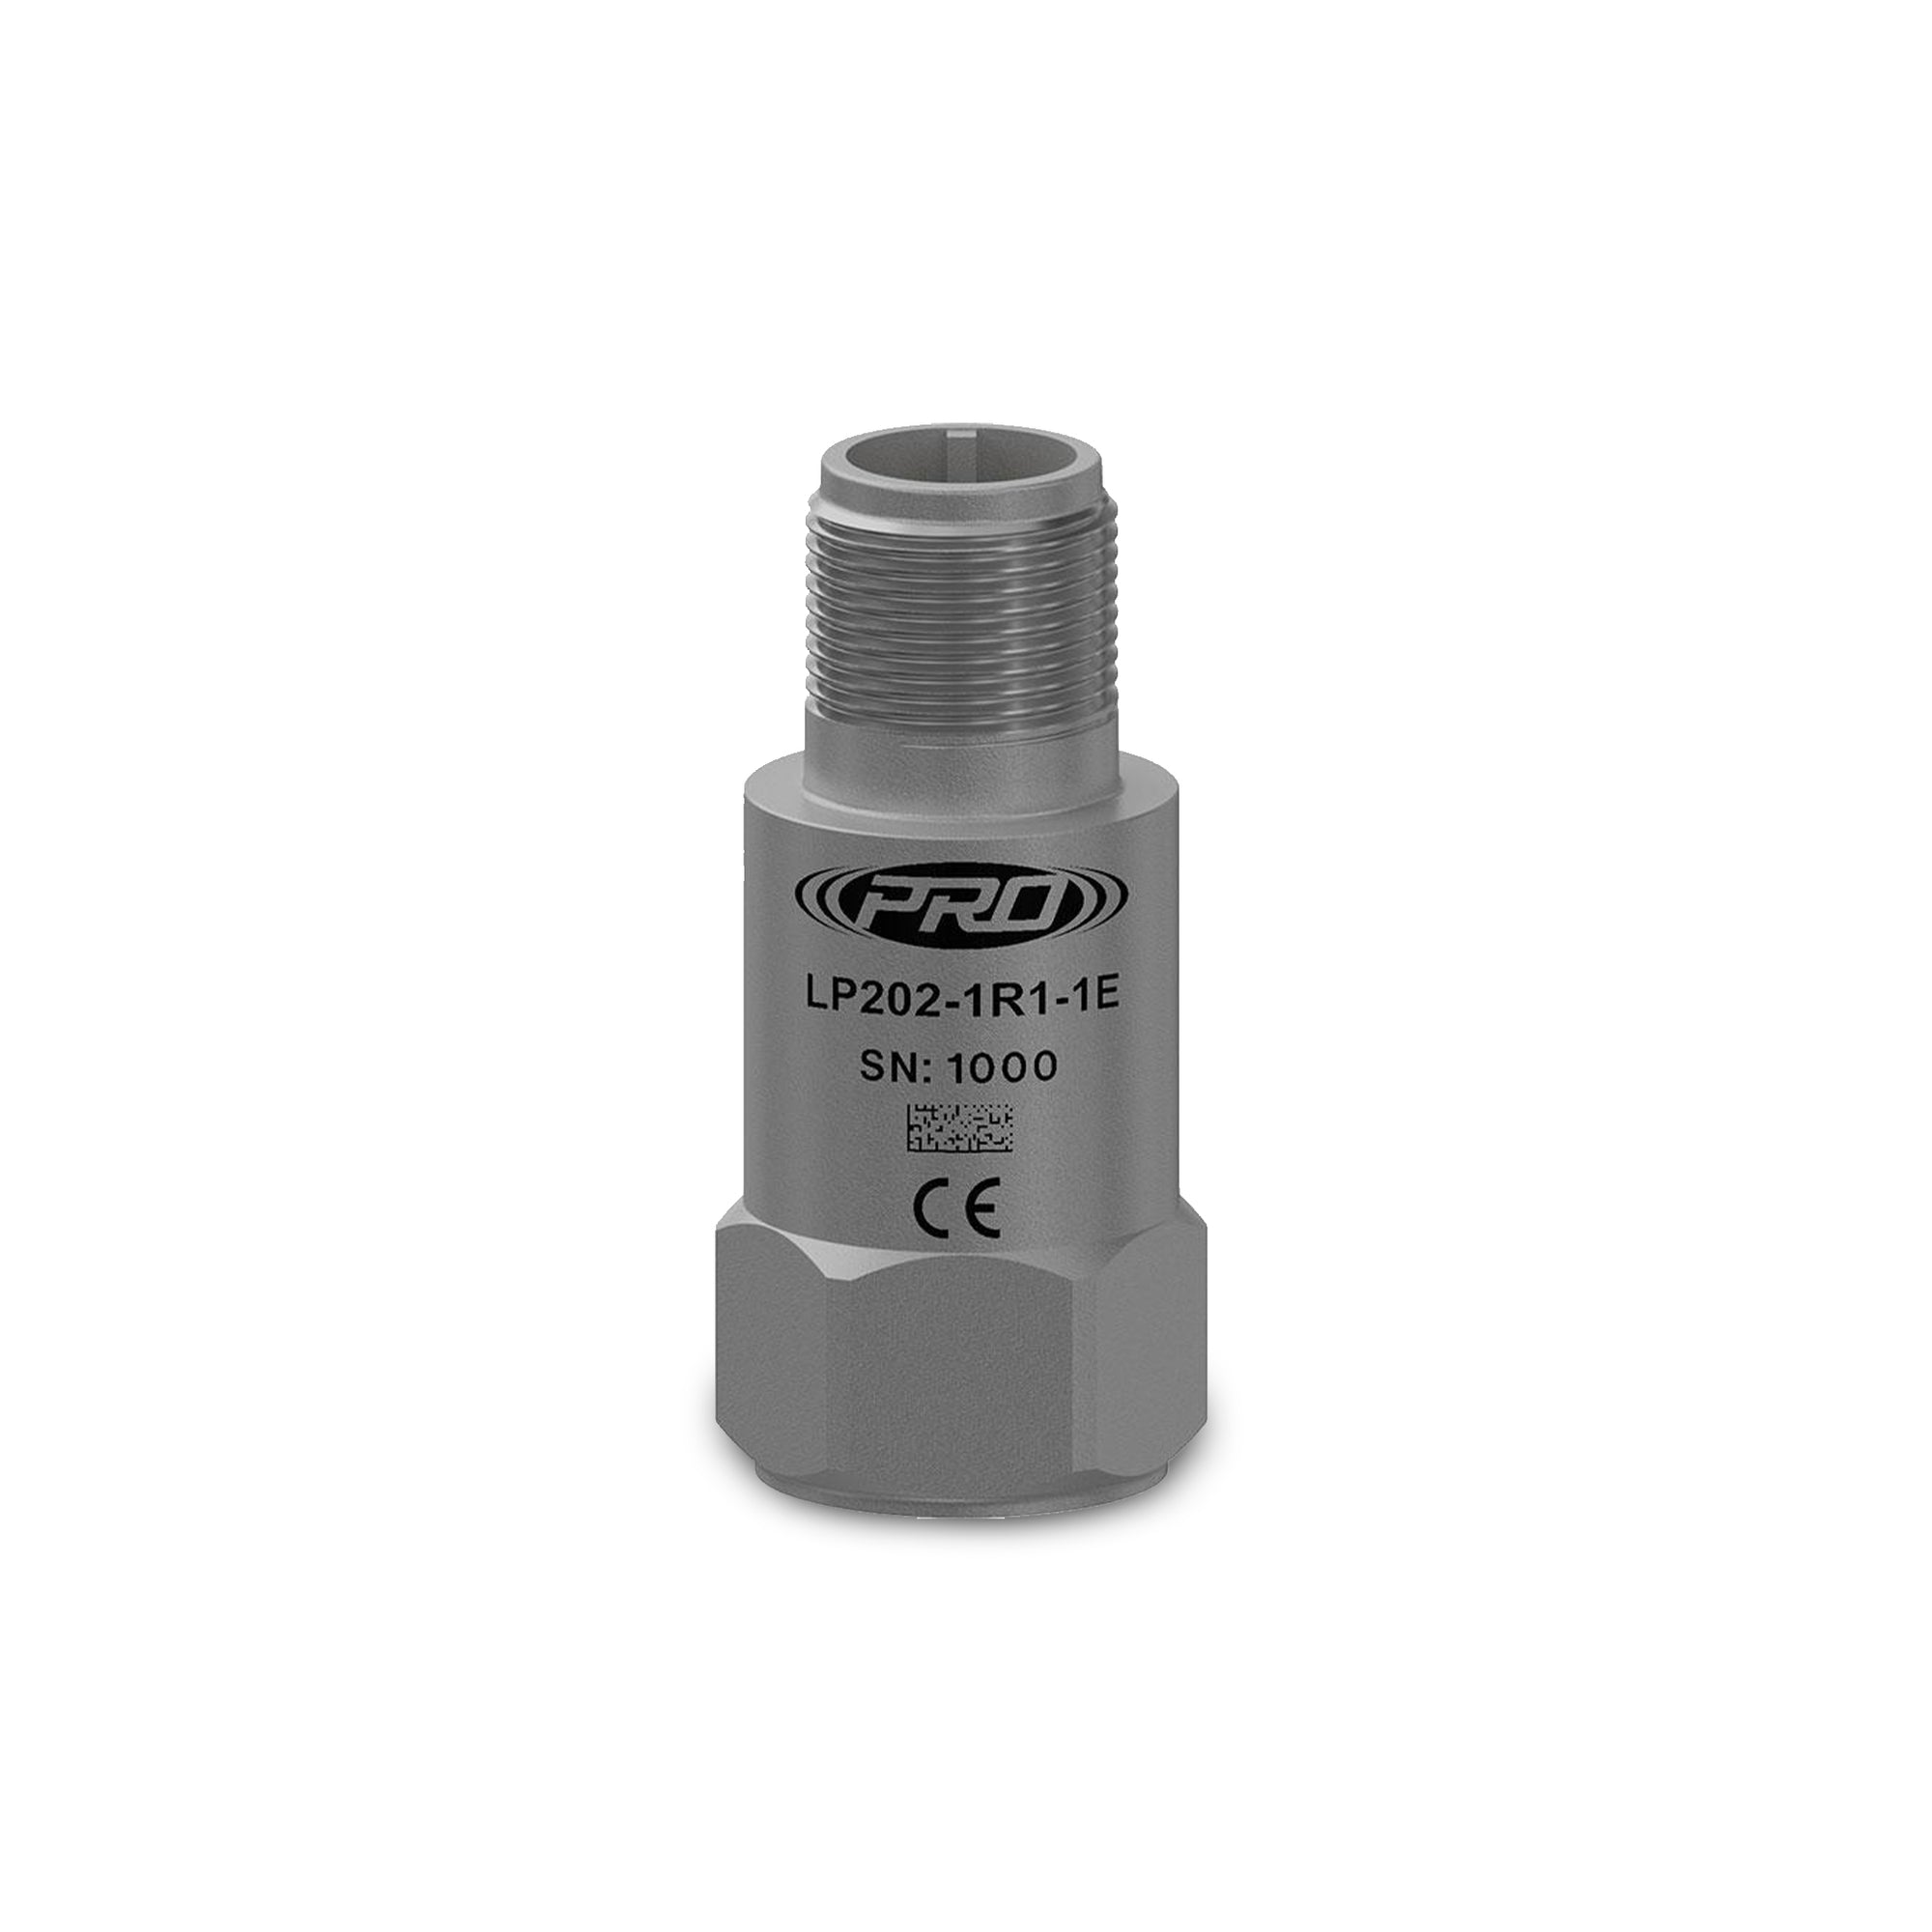 M/LP202-4R1-1E 0-20mm/s FS 4-20mA vibration transmitter